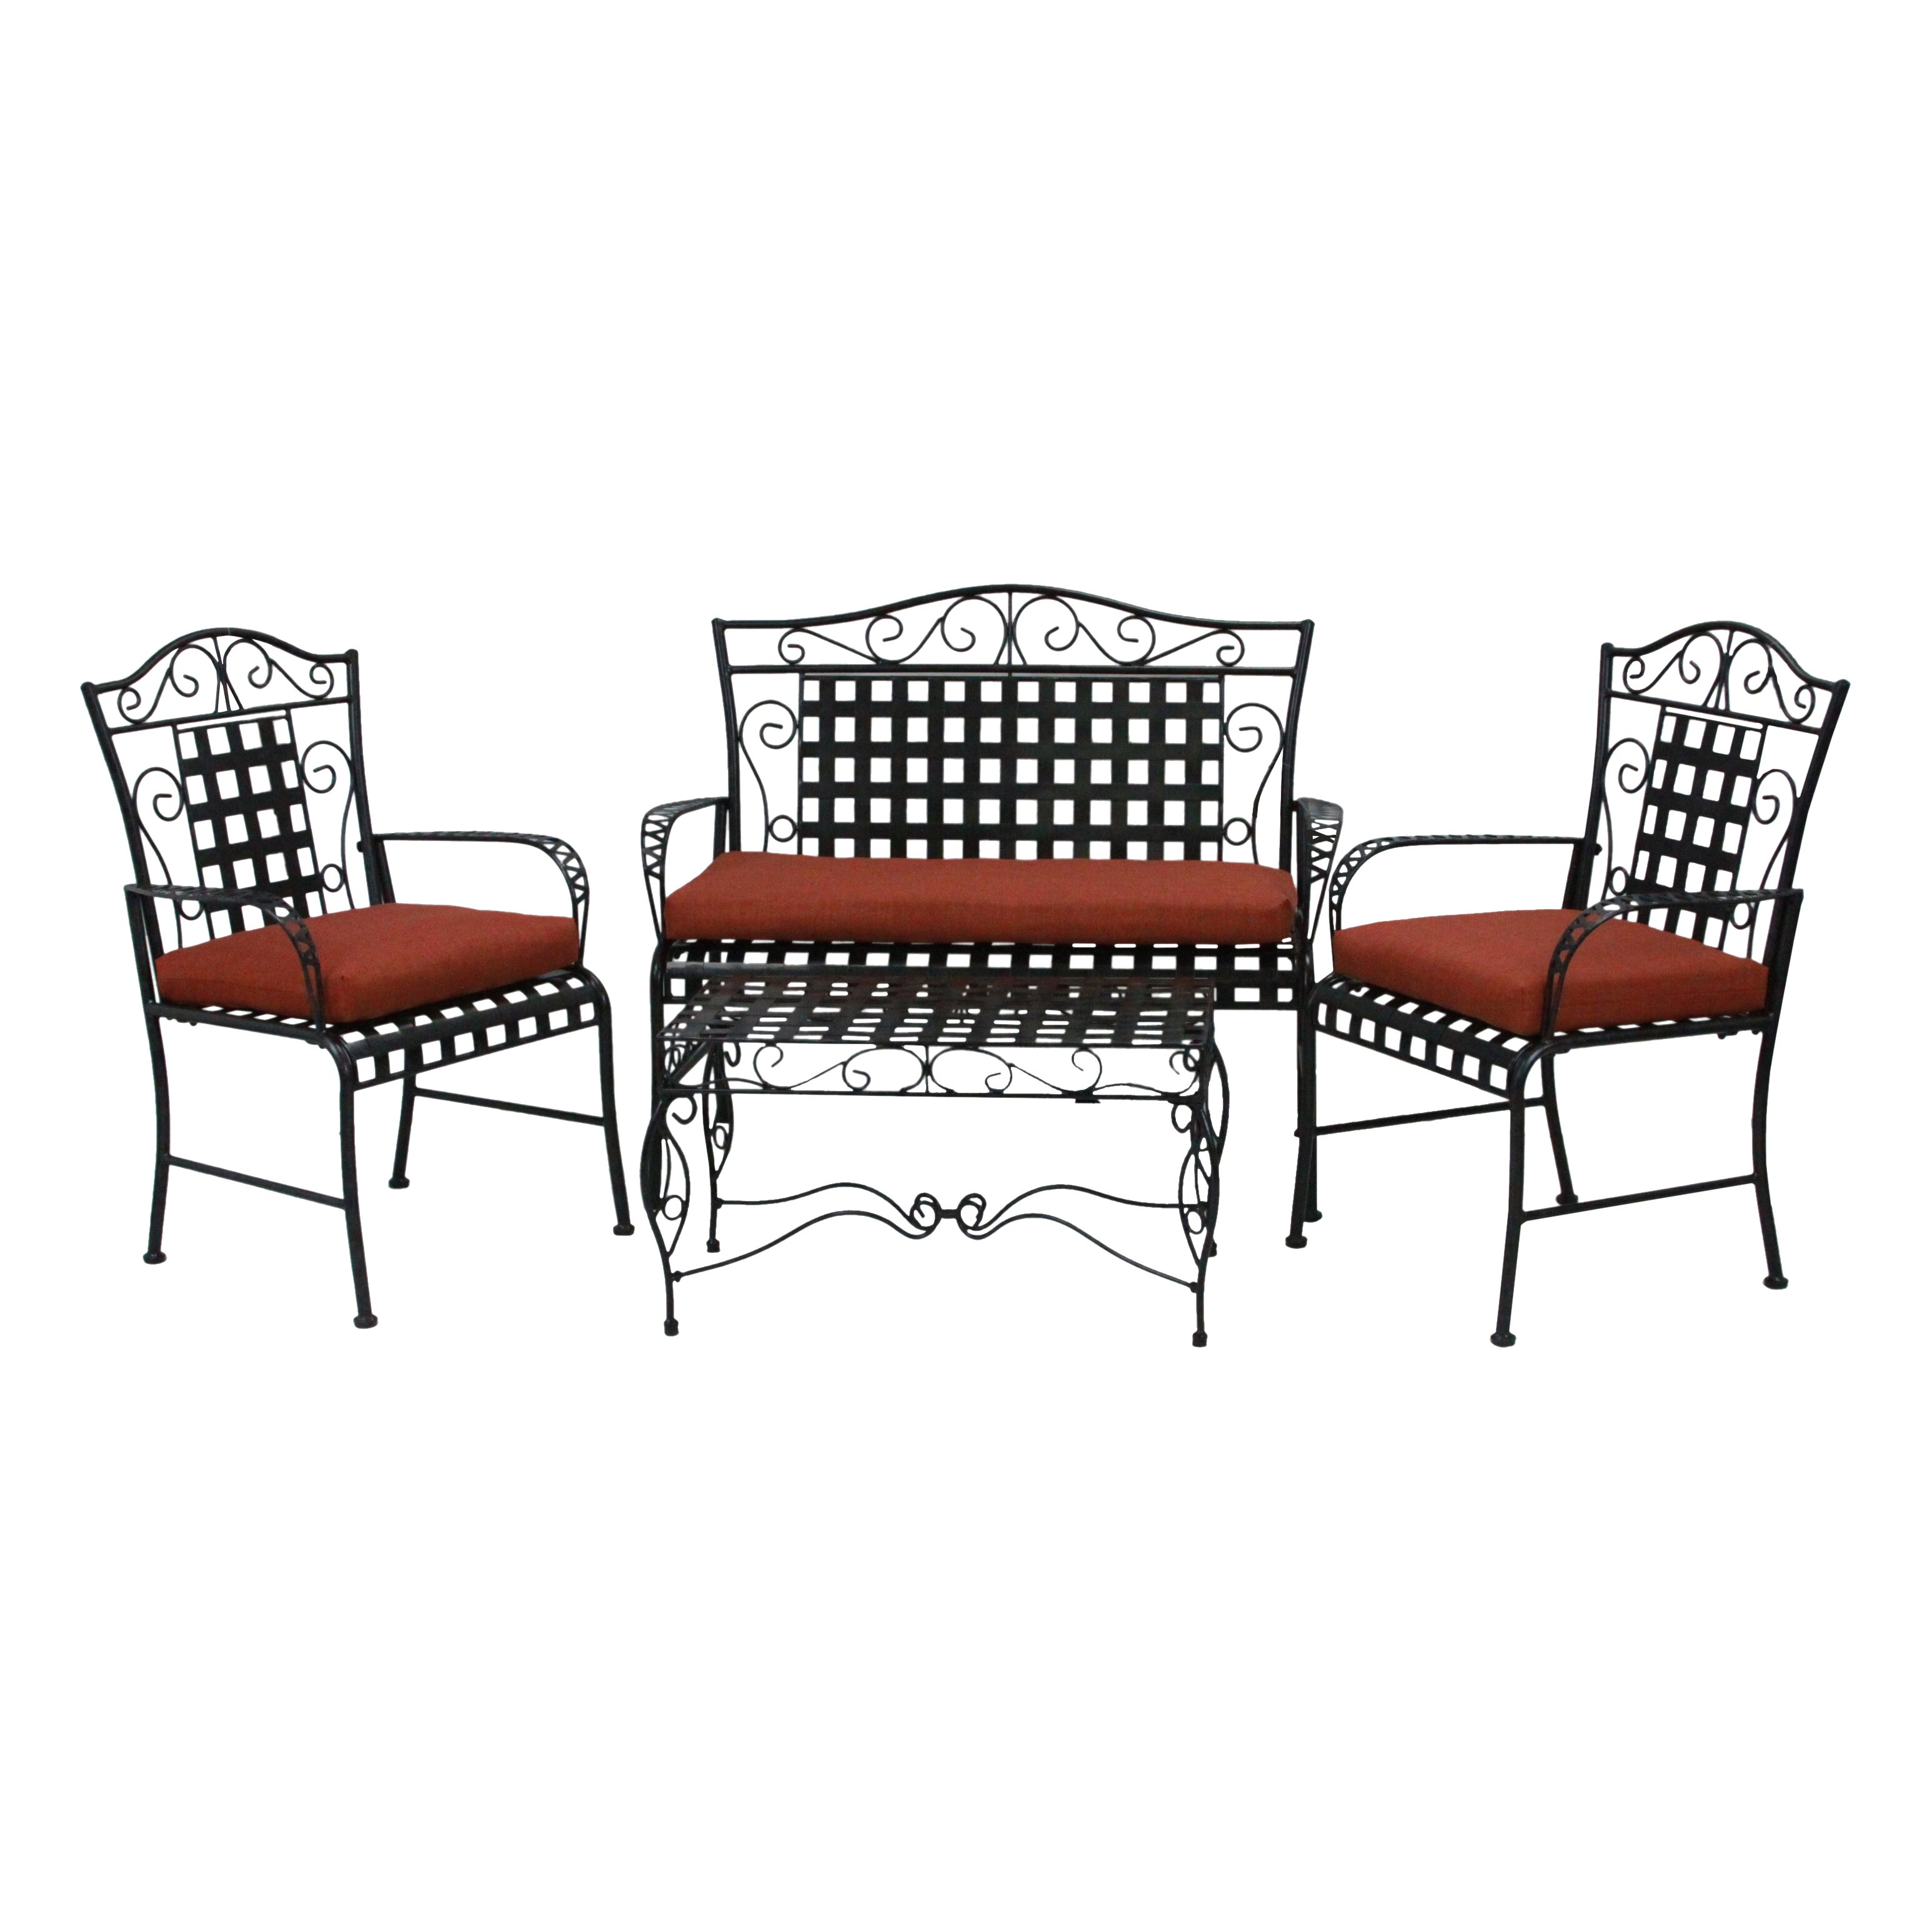 Blazing Needles 3 Piece Outdoor Dining Chair And Loveseat Cushion Set Reviews Wayfair